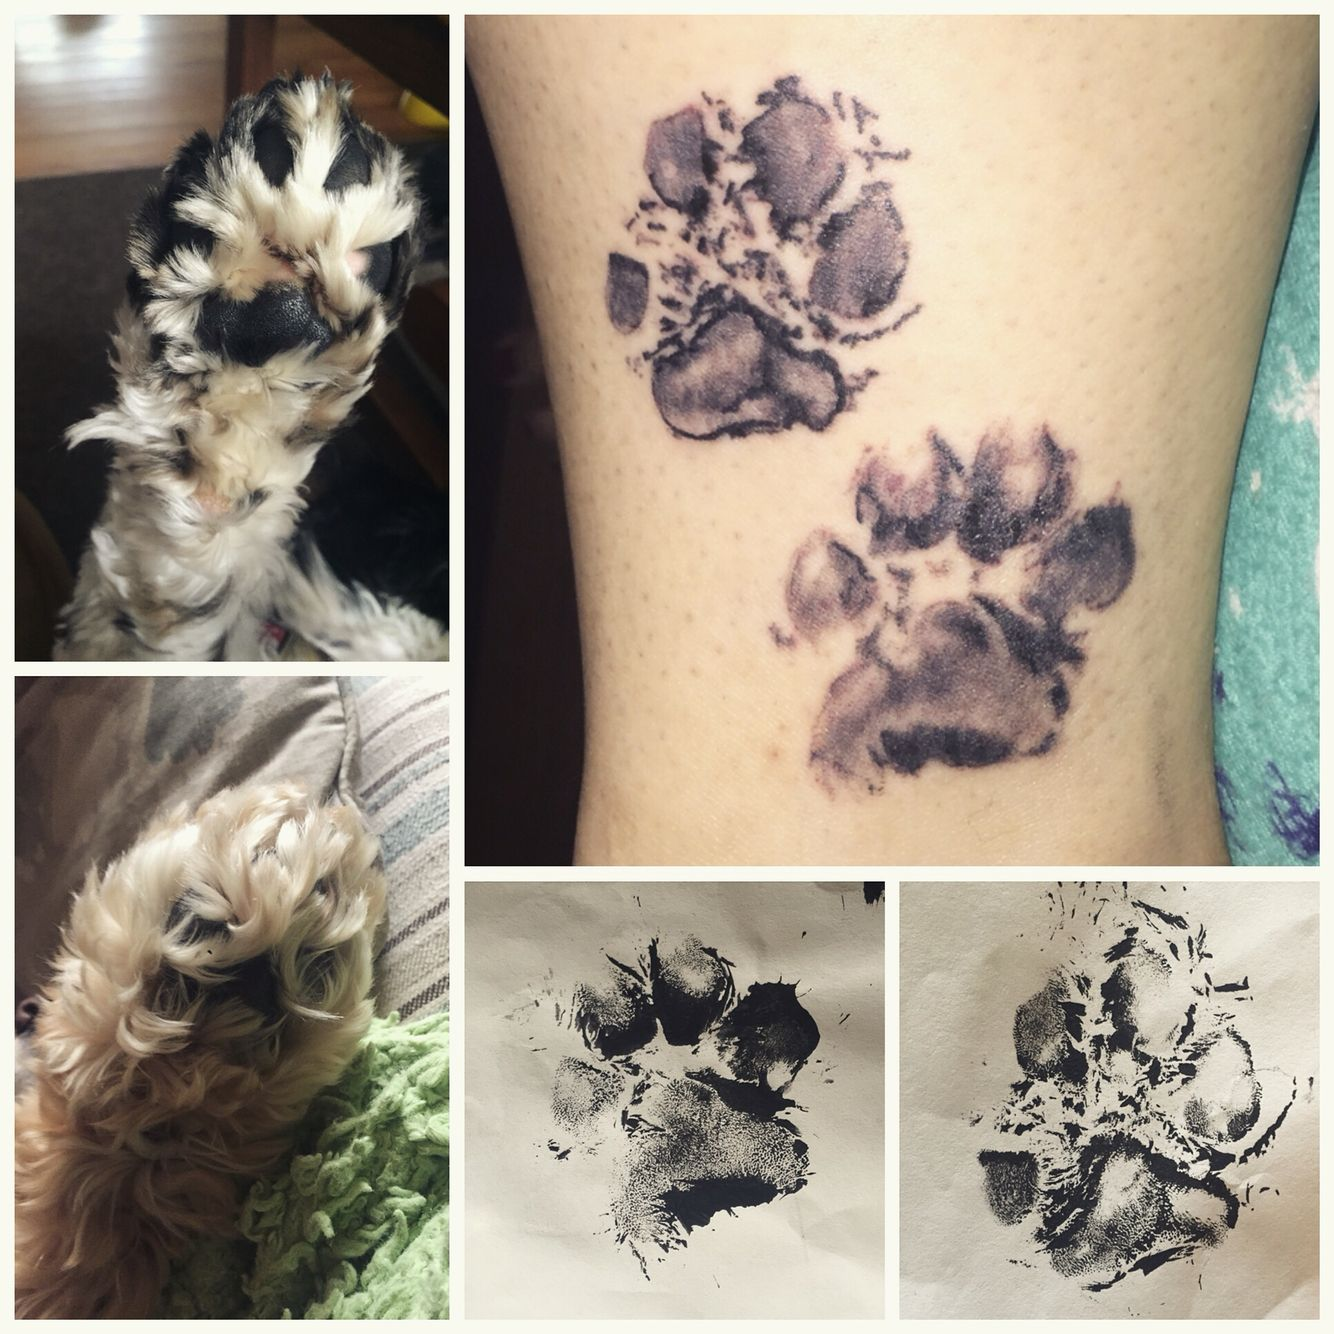 My Own Personal Tattoo It S The Actual Paw Print Of My Dogs That